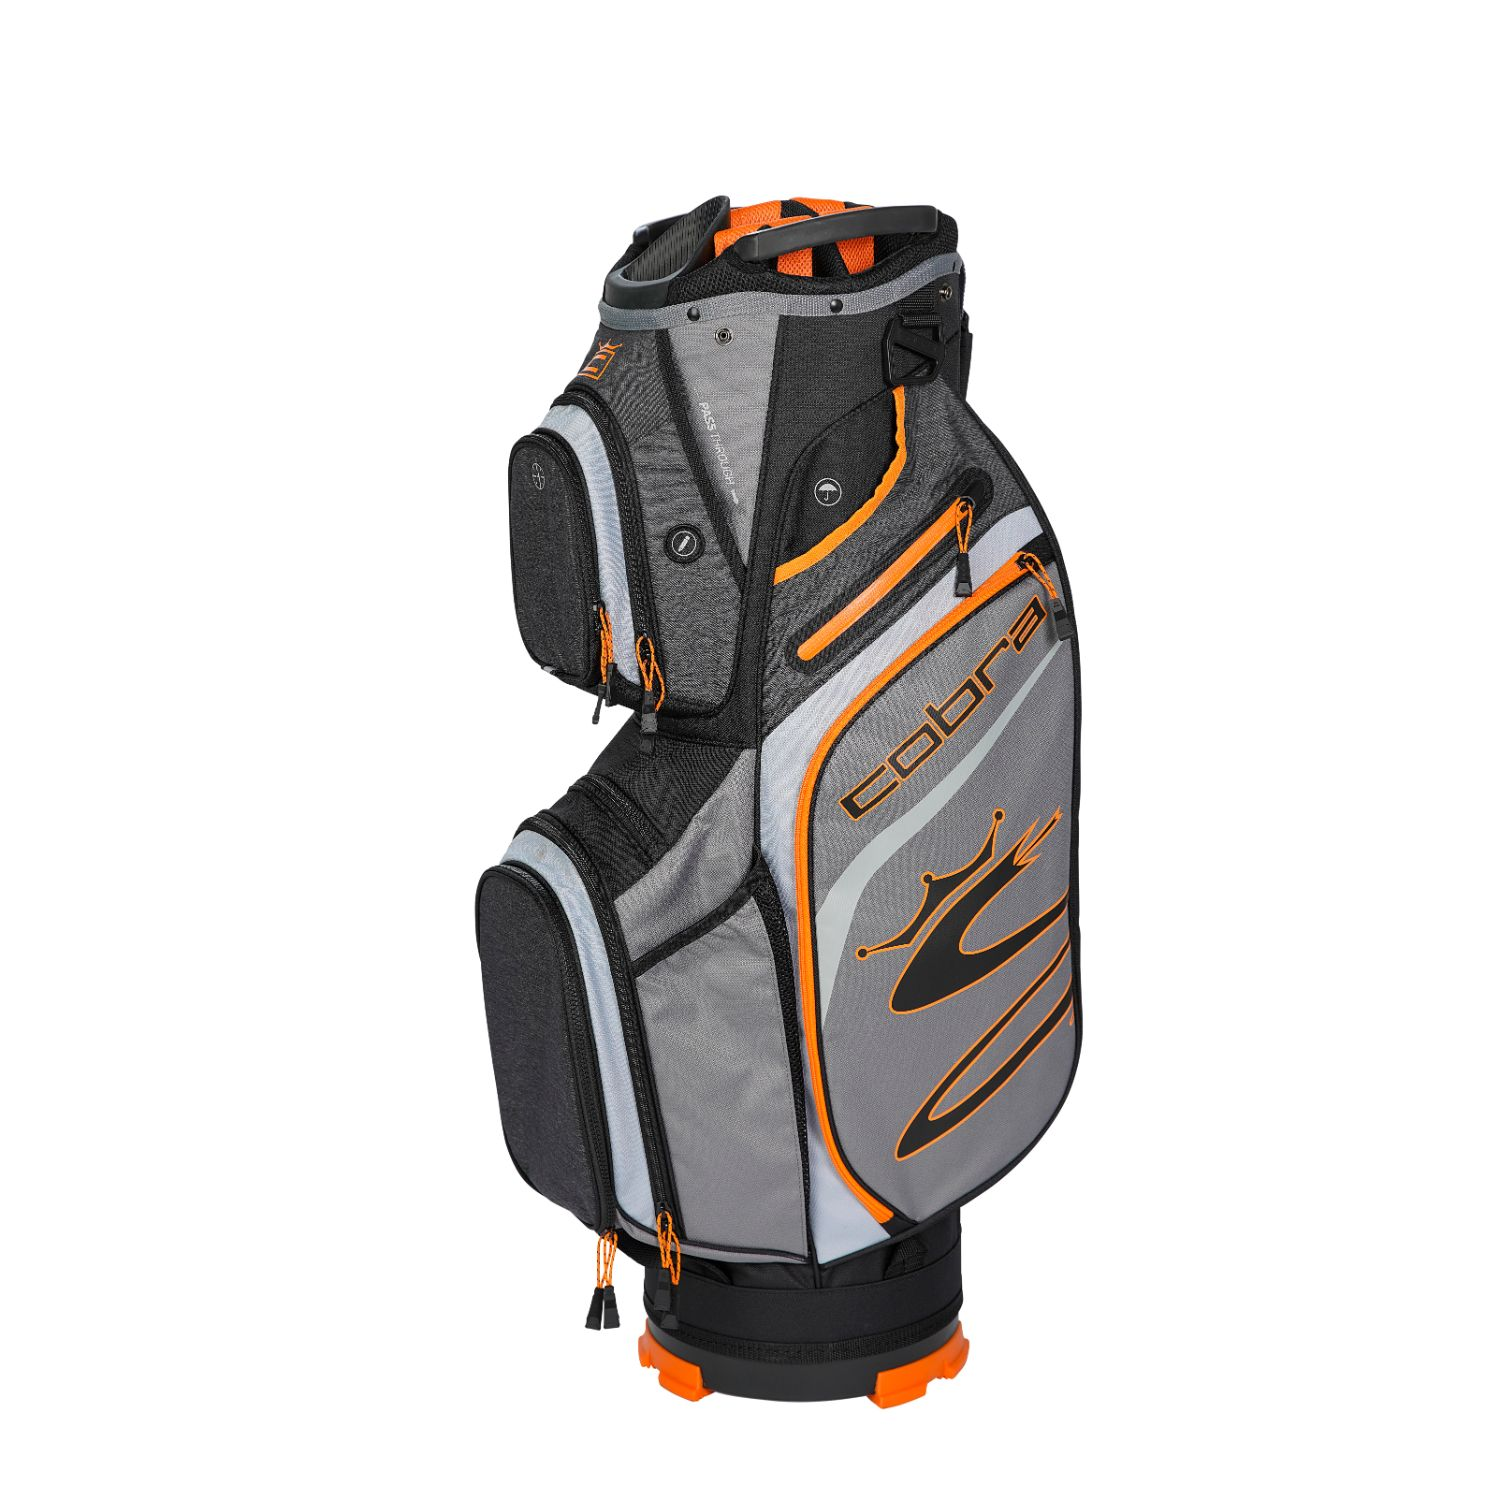 Cobra Golf 2020 Ultralight Cart Bag Quiet Shade-Vibrant Org